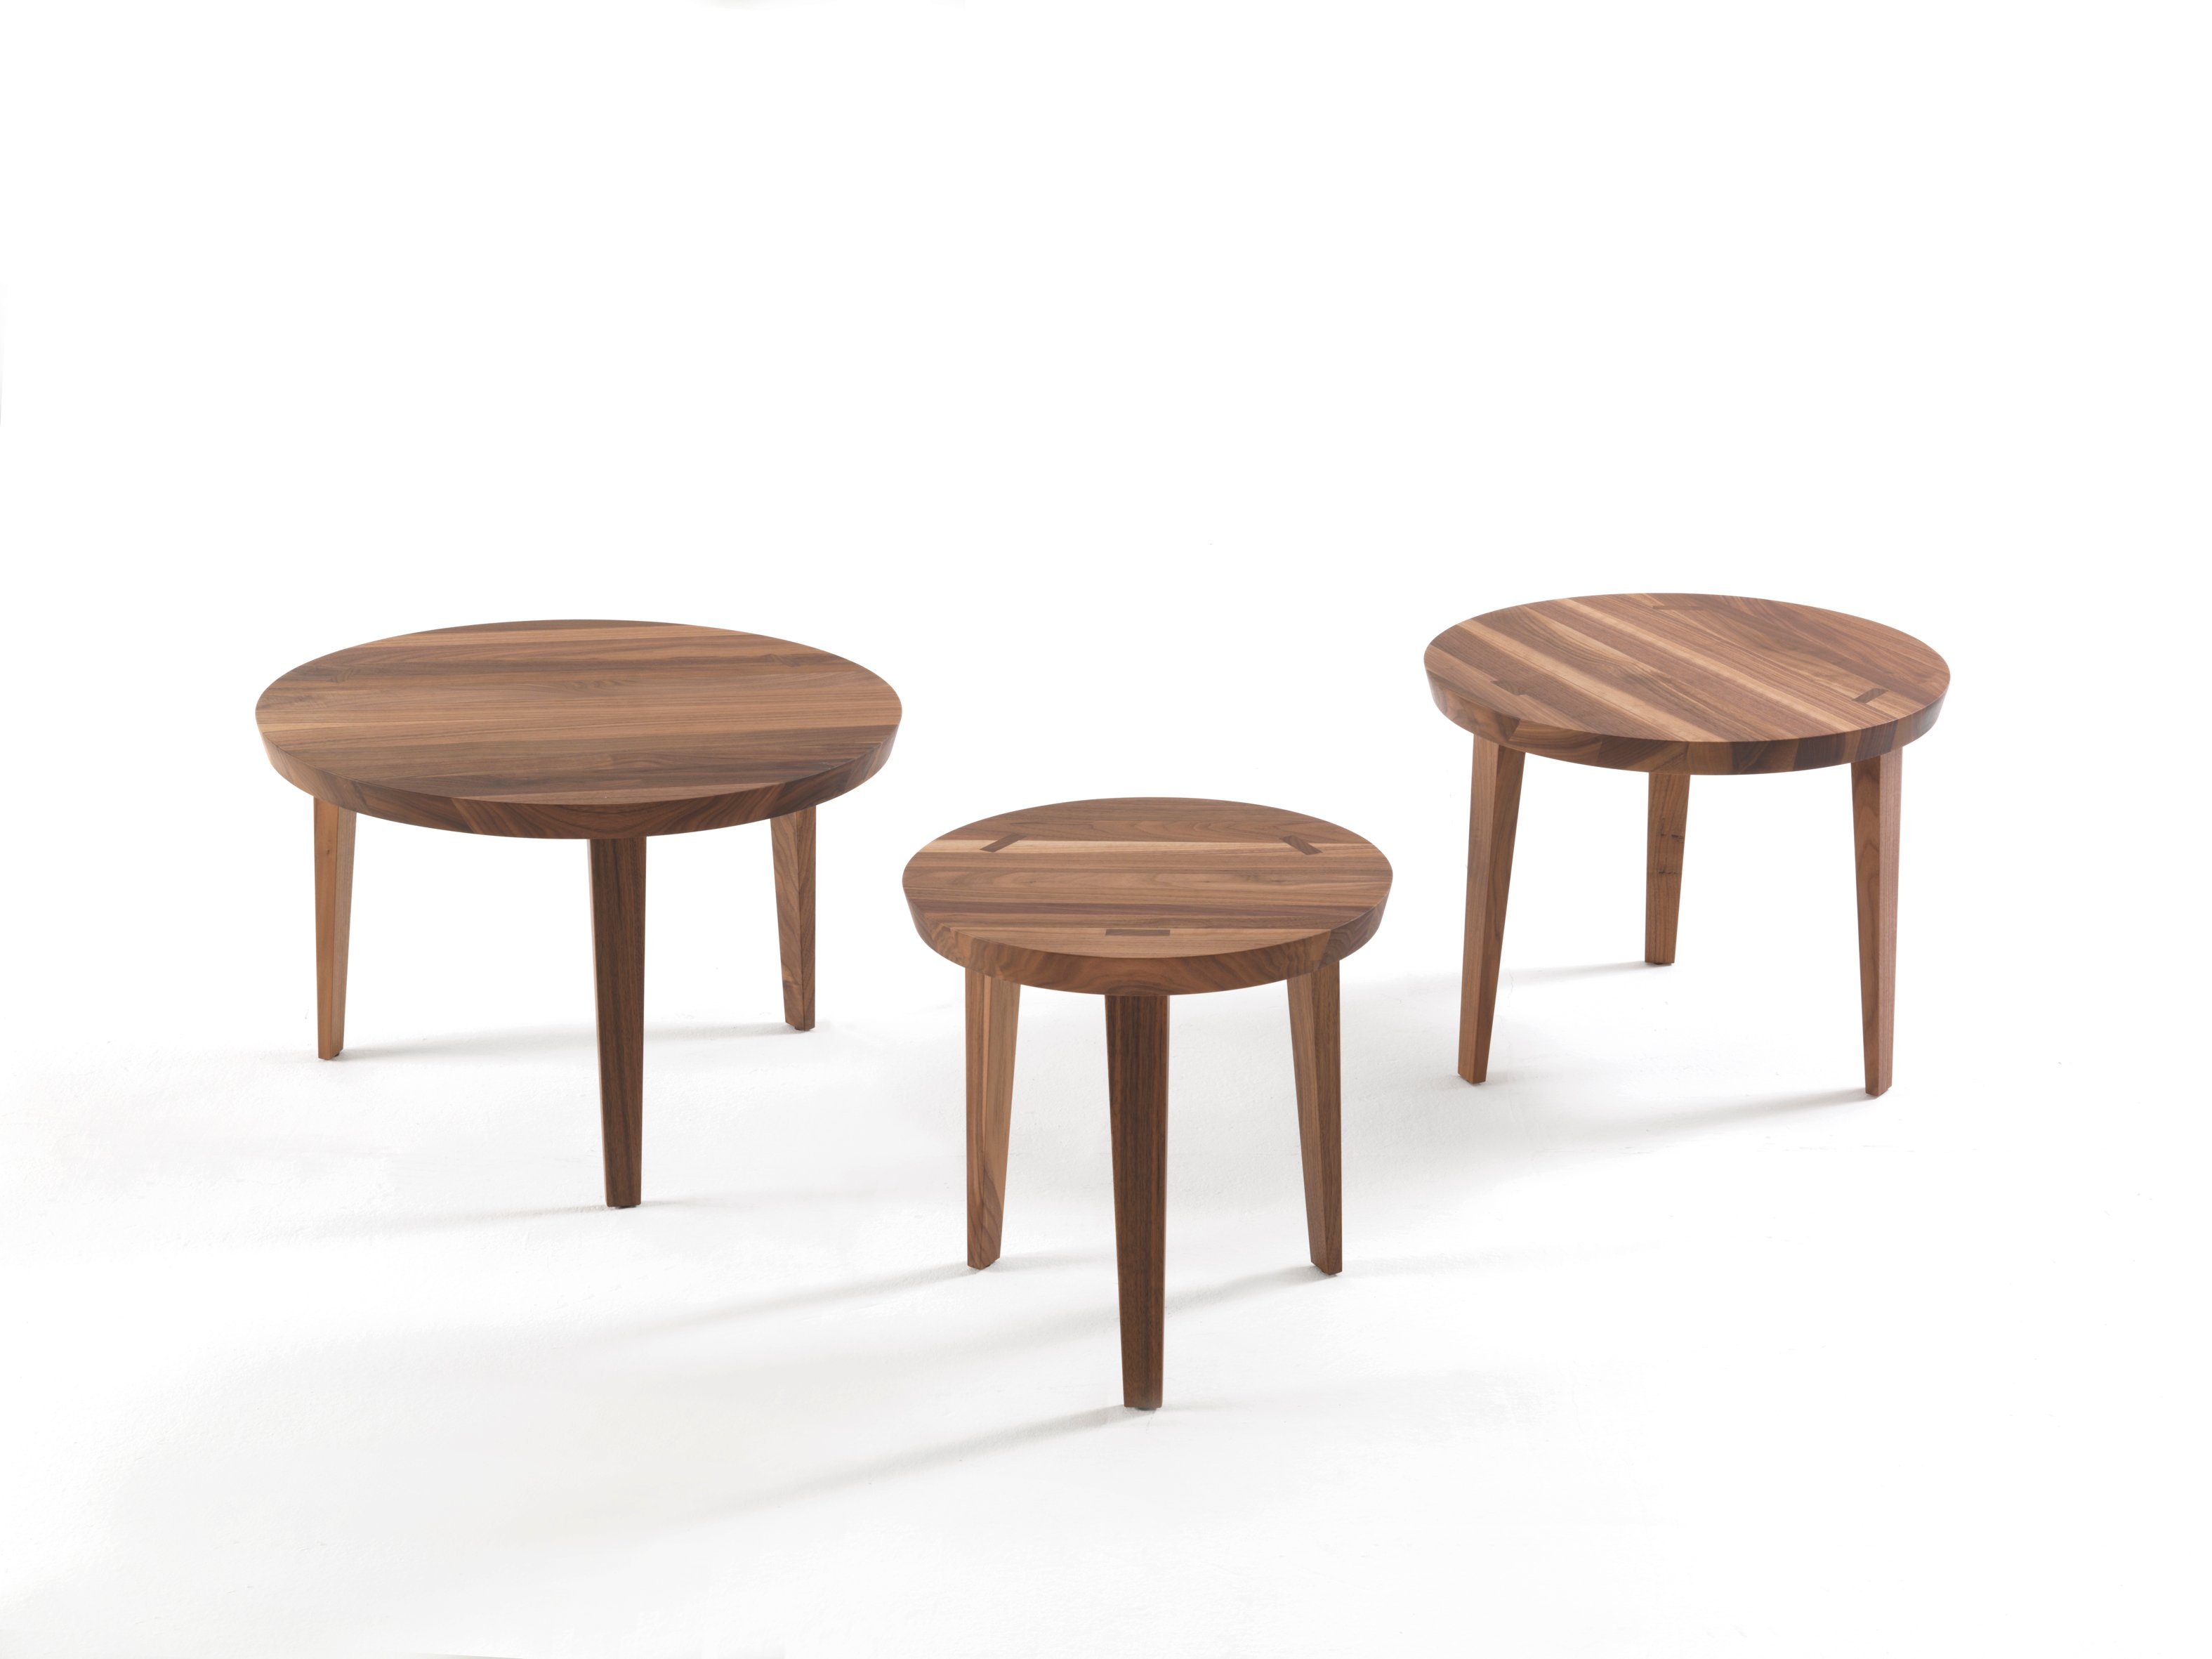 table basse ronde en bois massif collection tao by riva. Black Bedroom Furniture Sets. Home Design Ideas